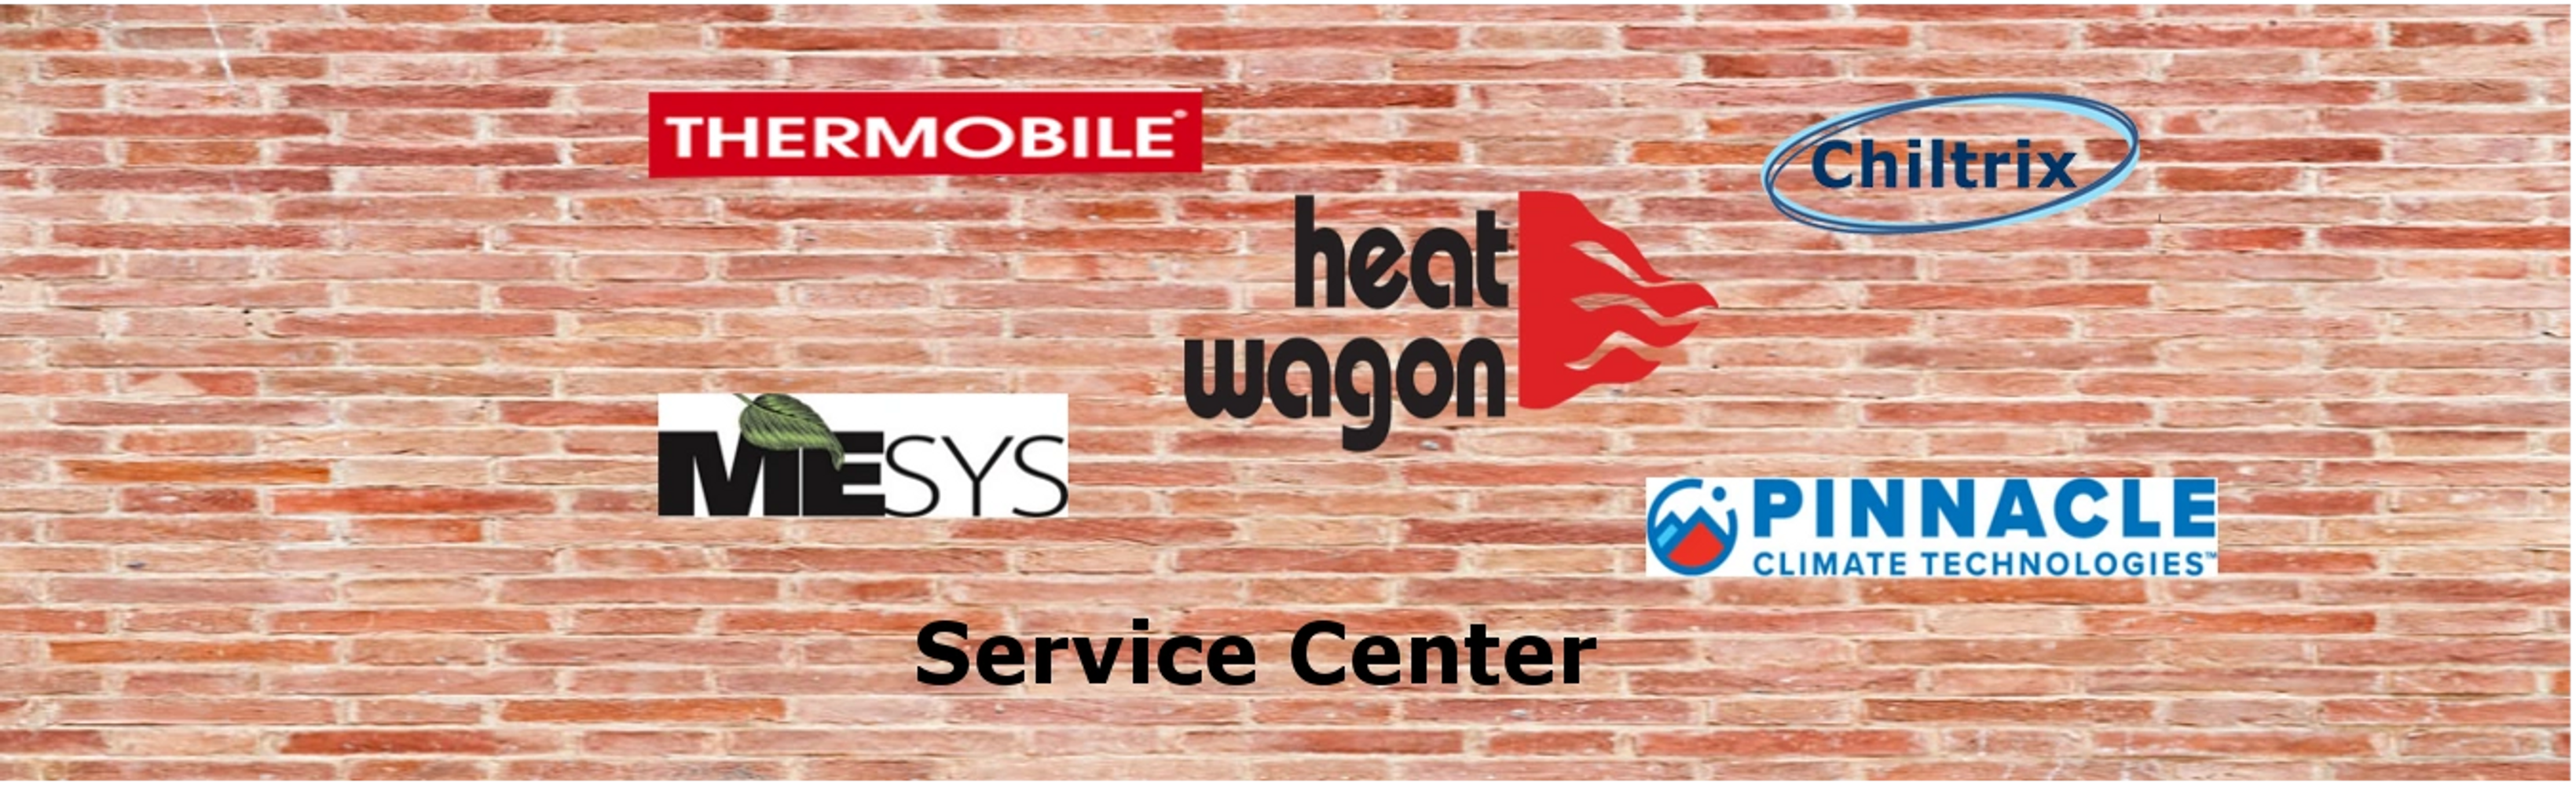 Serivce center, Mesys, thermobile parts, heat wagon heater, chiltrix,  heeter repair center